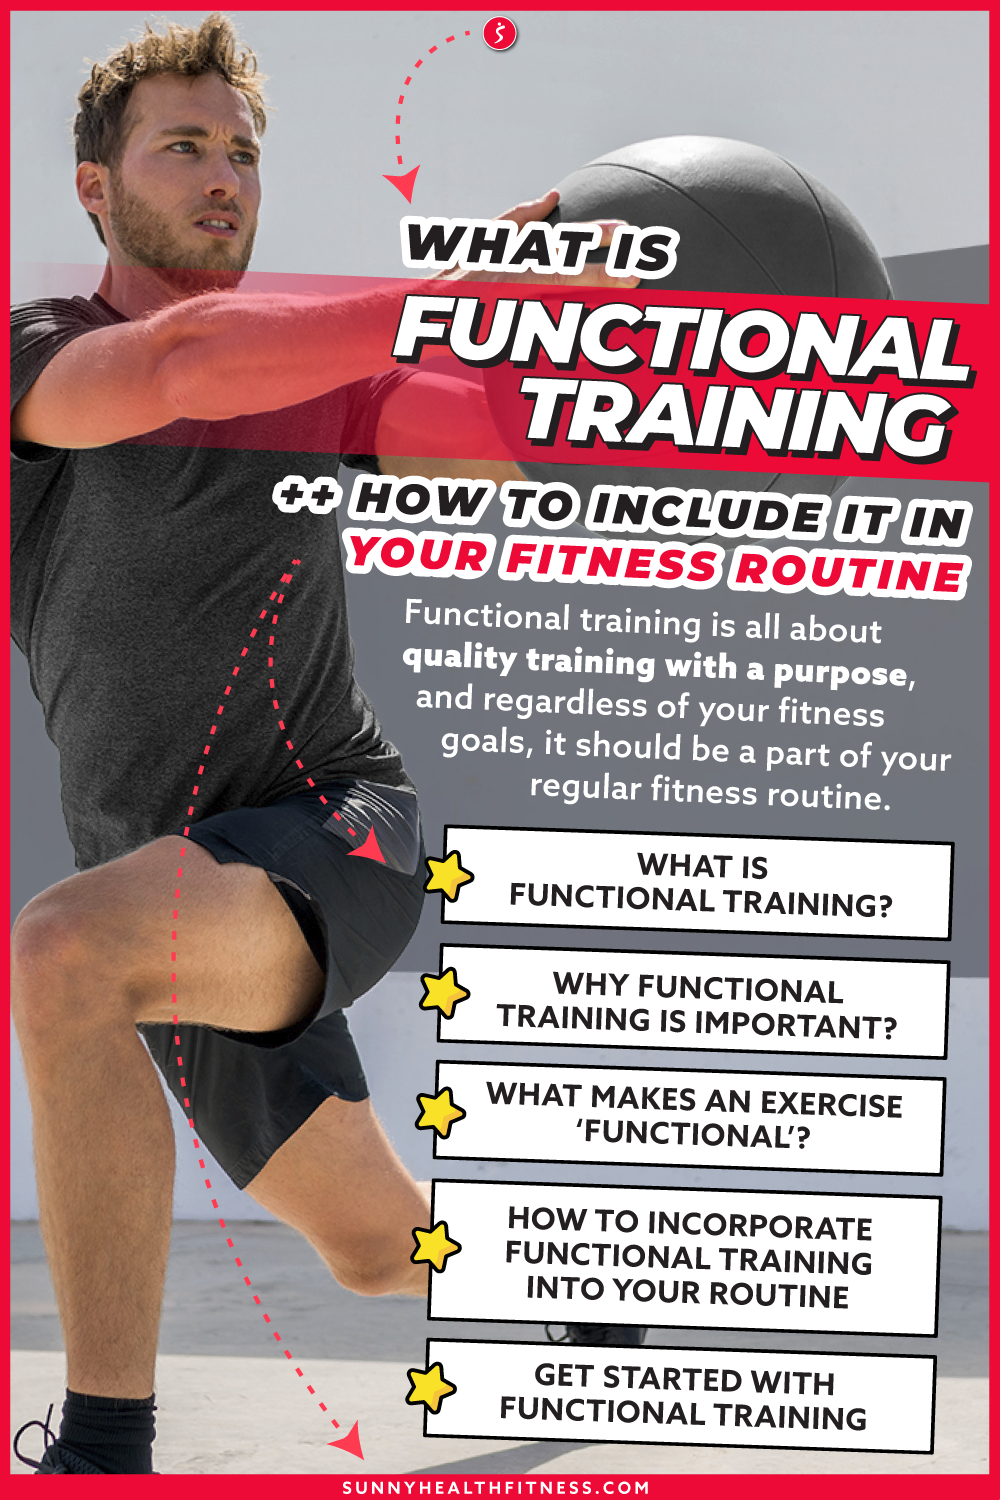 Learn About Functional Training And Include Functional Fitness Into Your Workout Routine